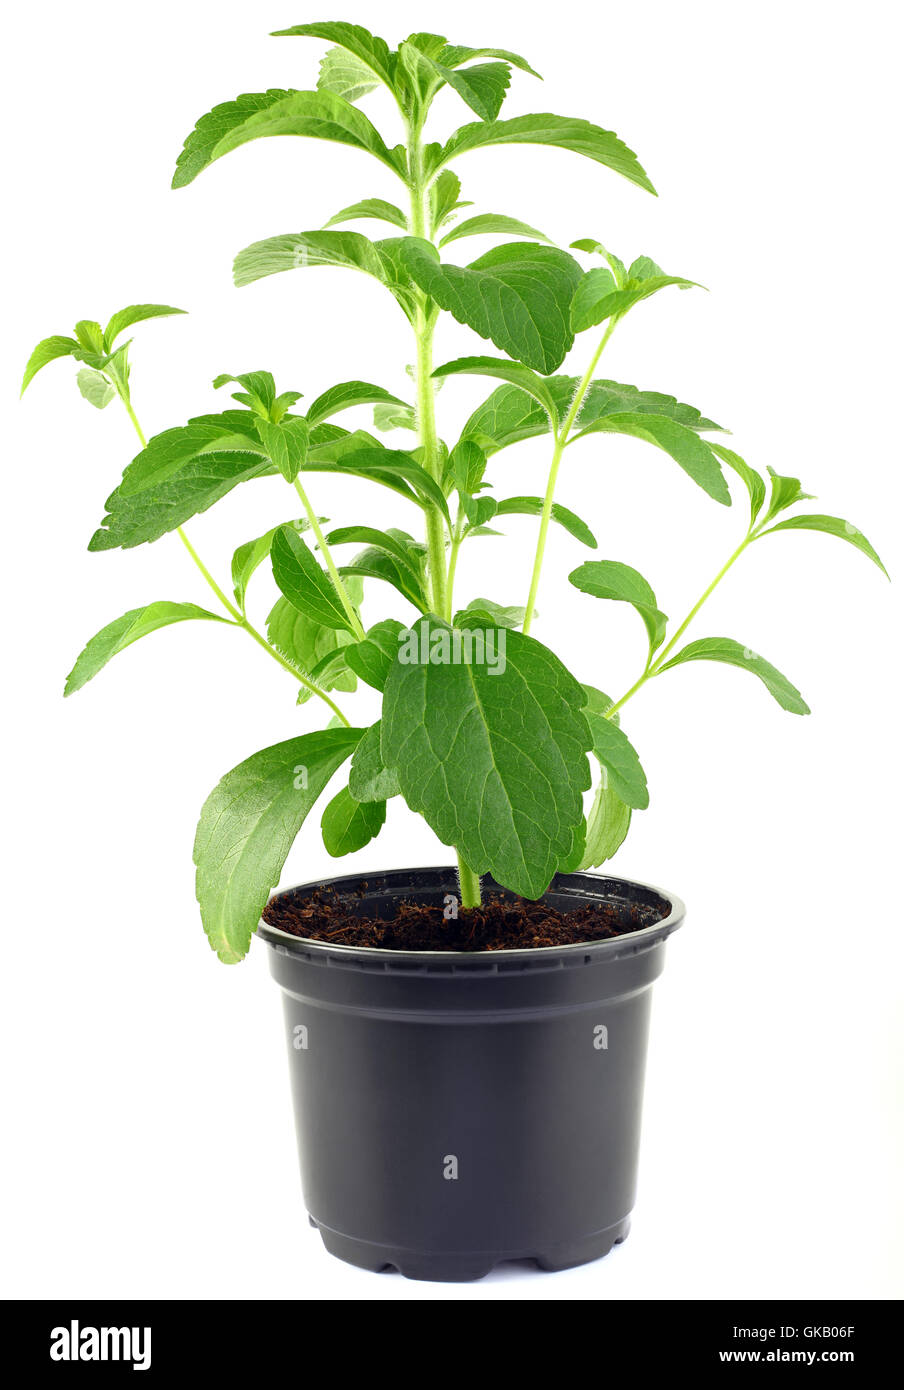 growth herb substitute - Stock Image